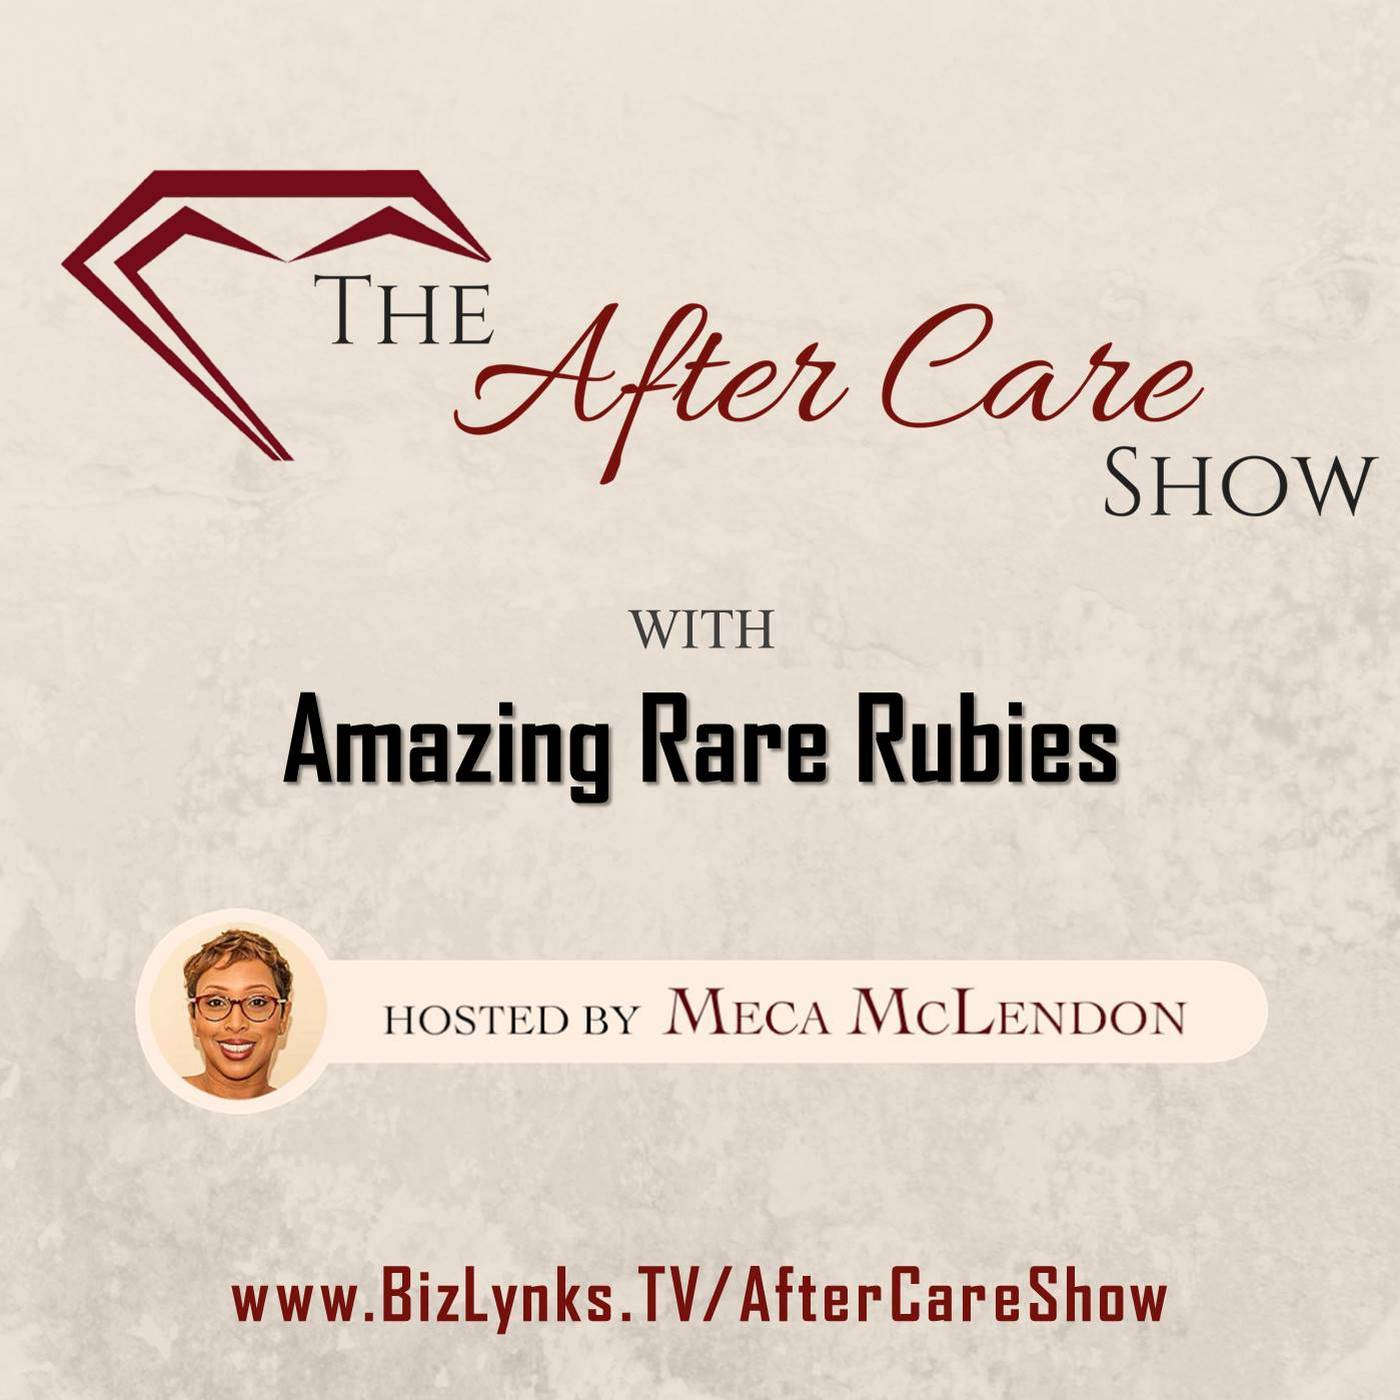 After Care Show | BizLynks TV Network